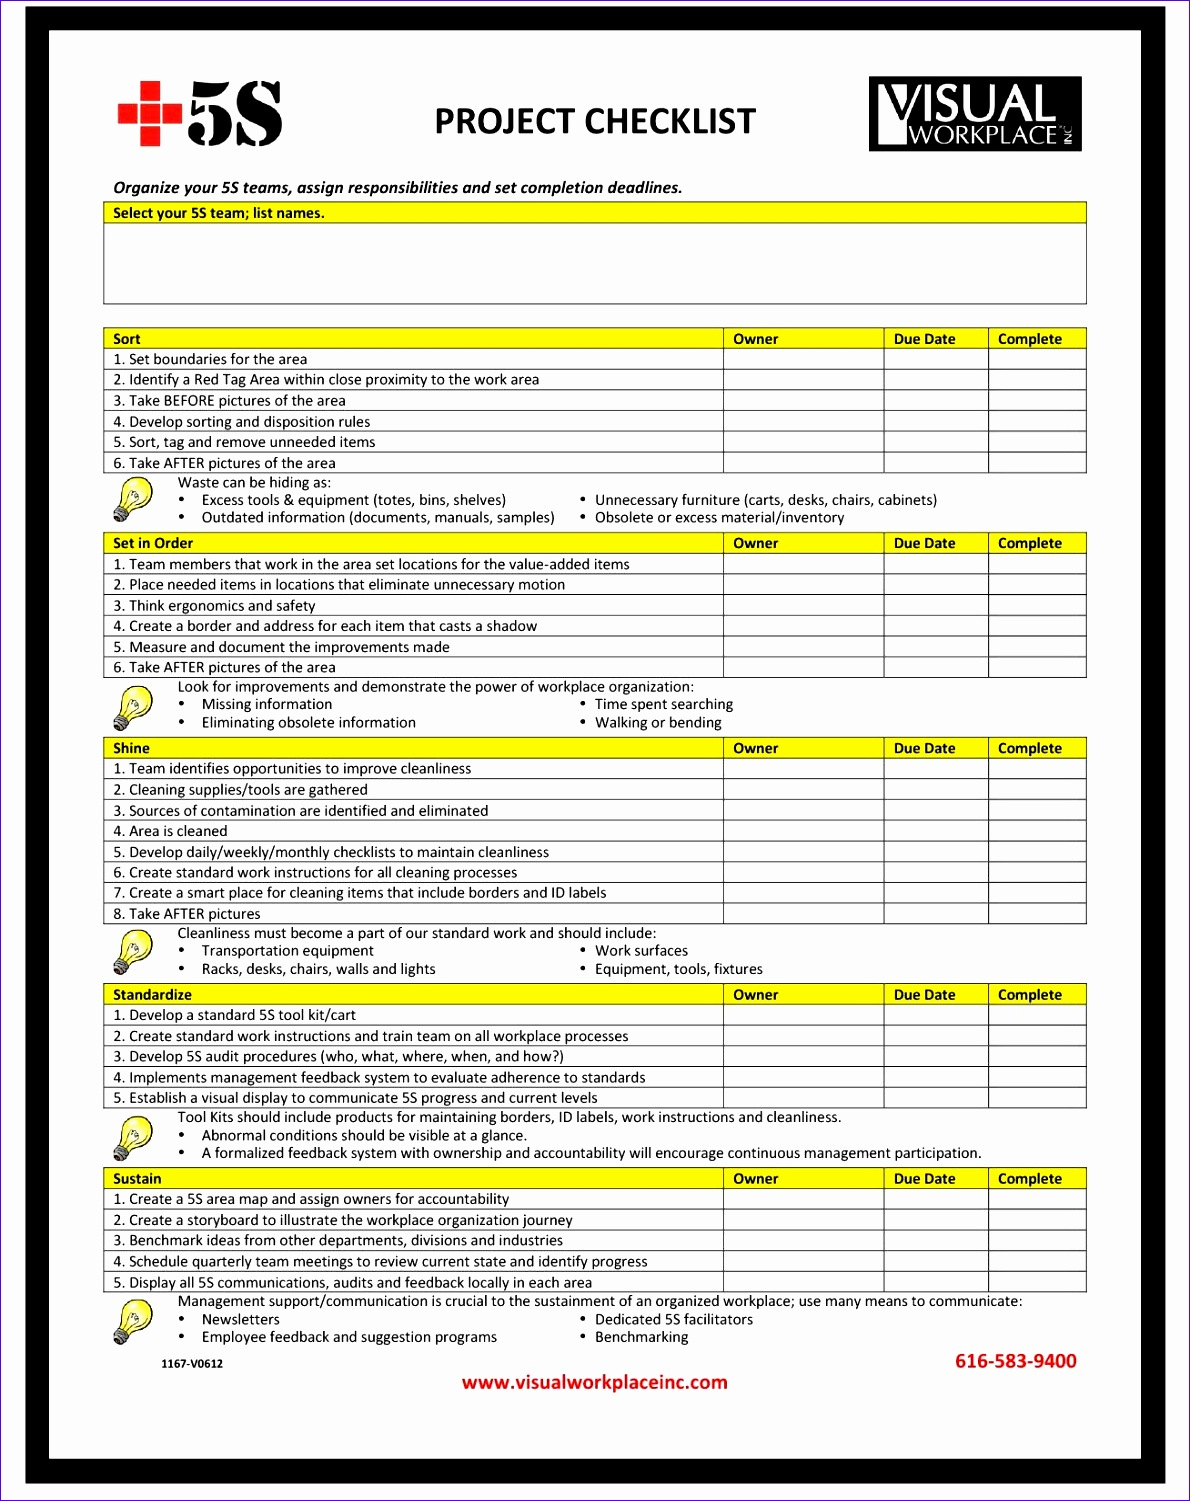 excel project checklist template